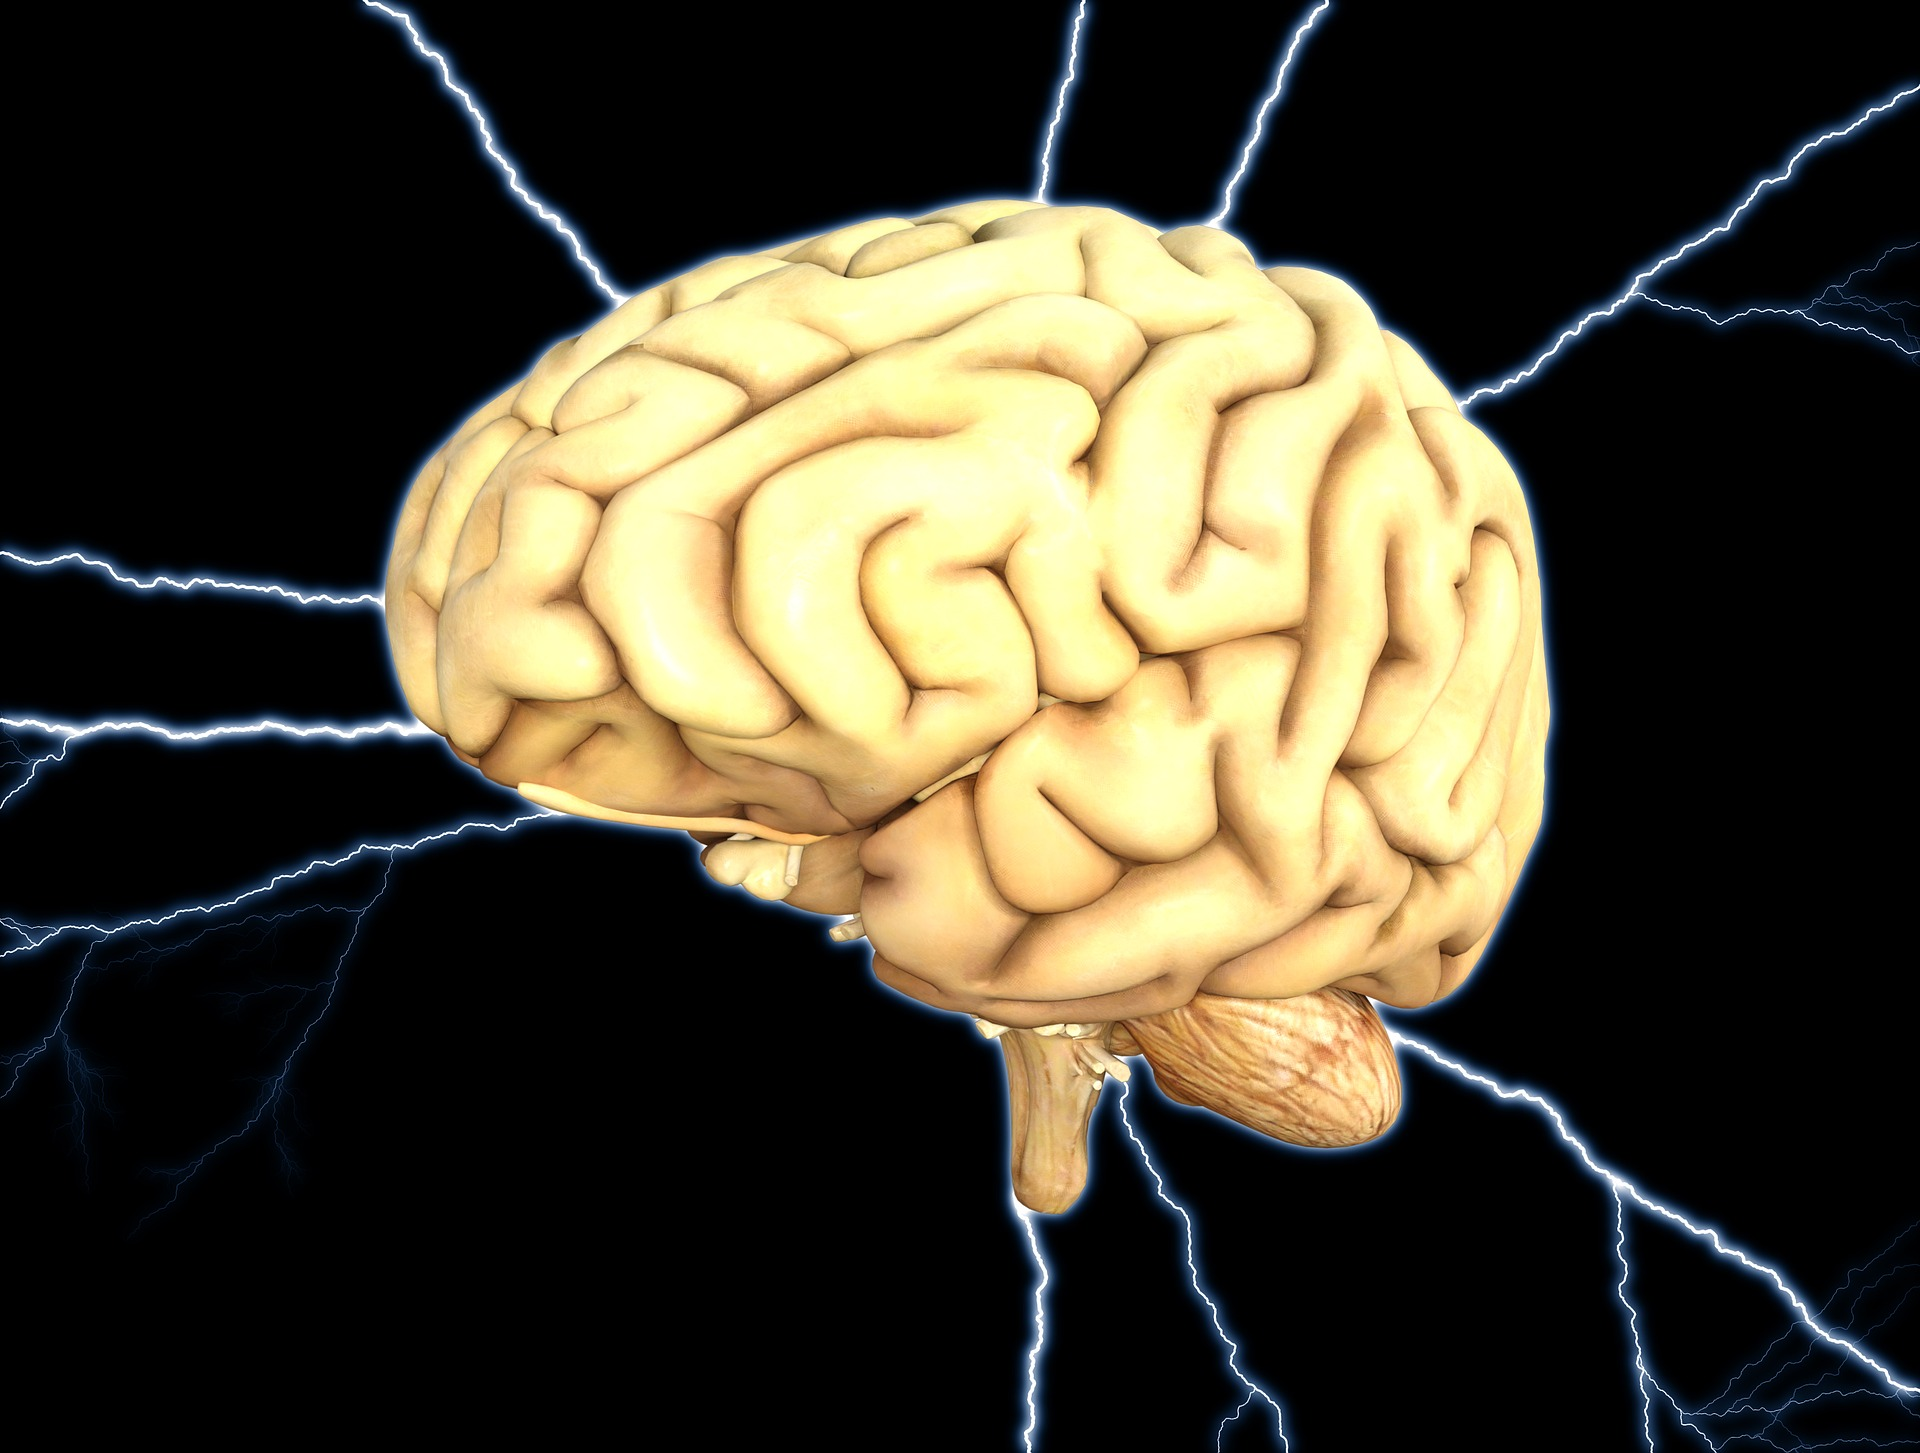 picture of the brain with lightning coming out of it